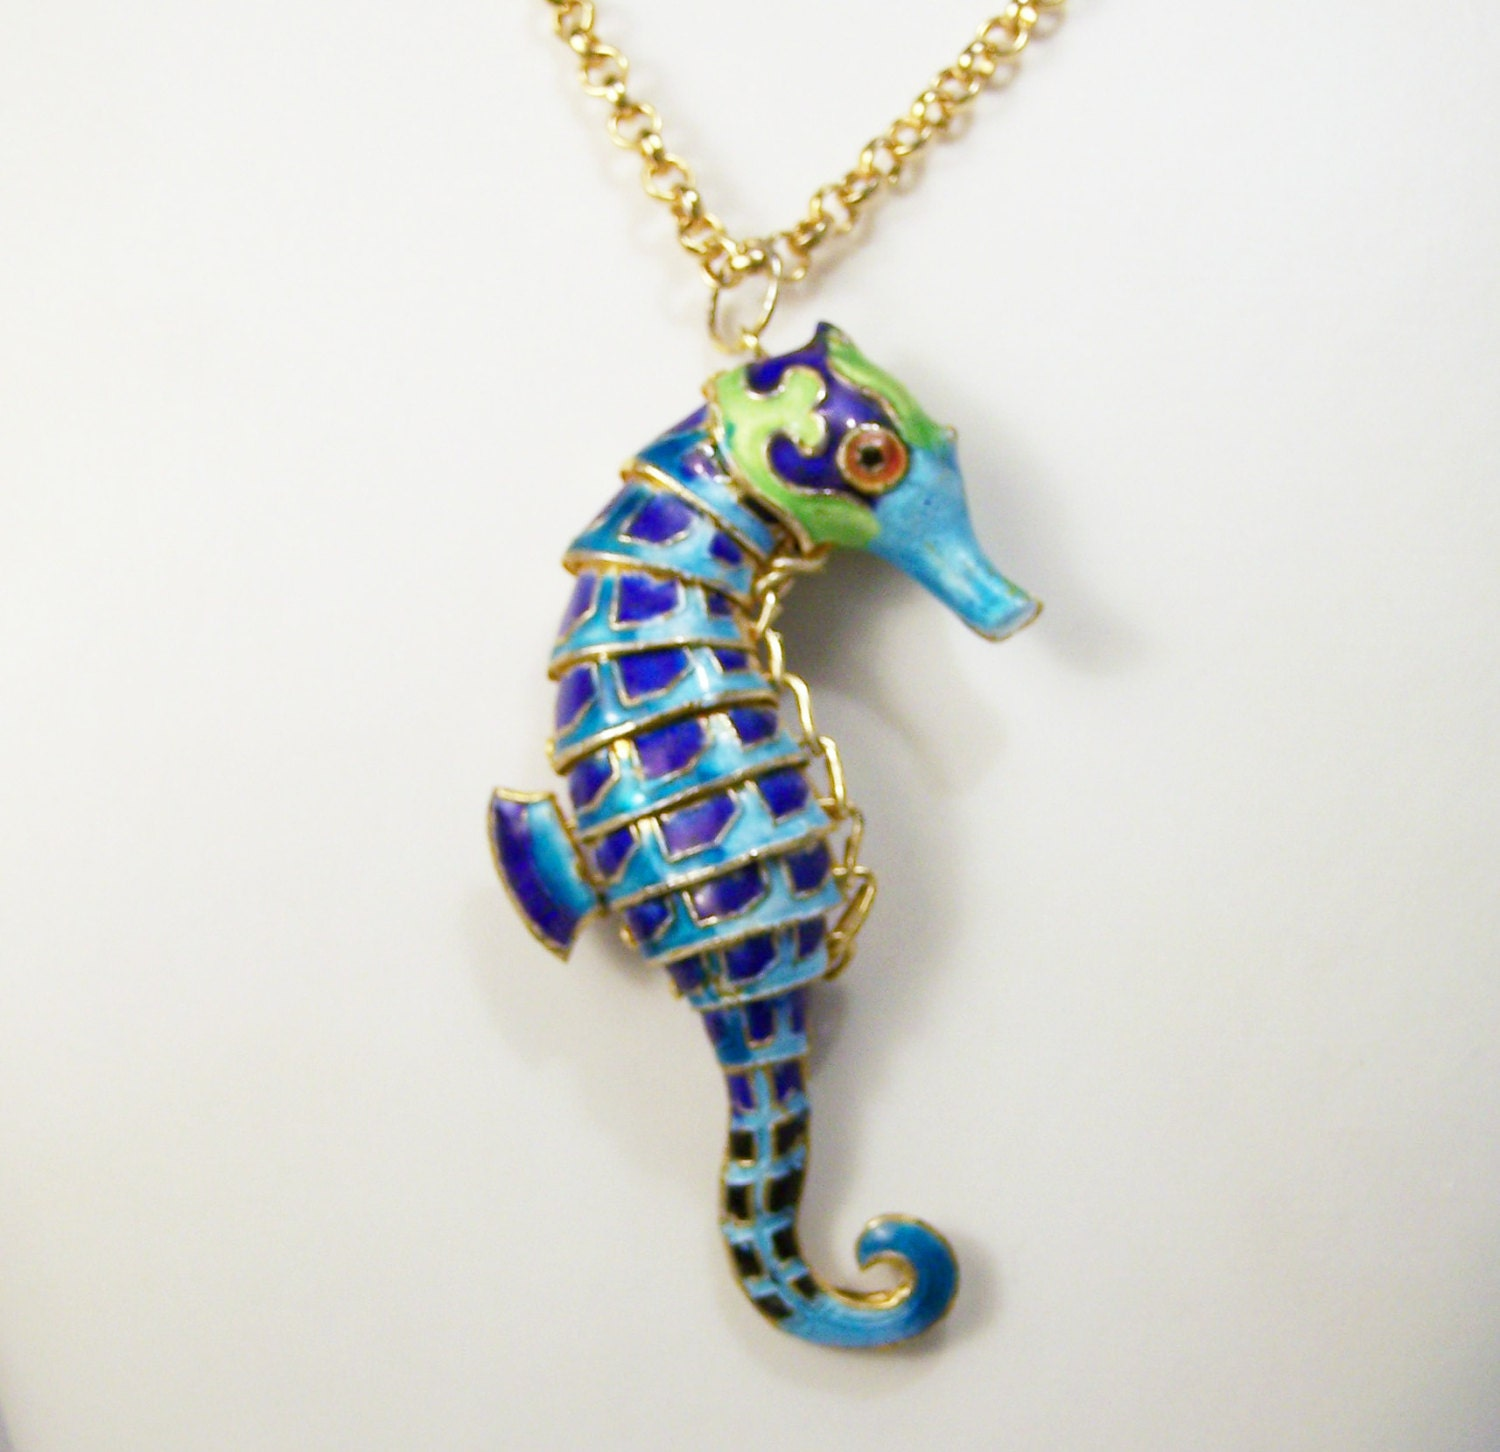 Vintage Large Blue Enamel Seahorse Pendant Necklace Figural. Friendship Bands. Winza Sapphire. Enamel Bangles. Stacked Bangle Bracelets. Laser Engraved Necklace. Machine Chains. Pear Shaped Diamond Engagement Rings. Choker Necklace